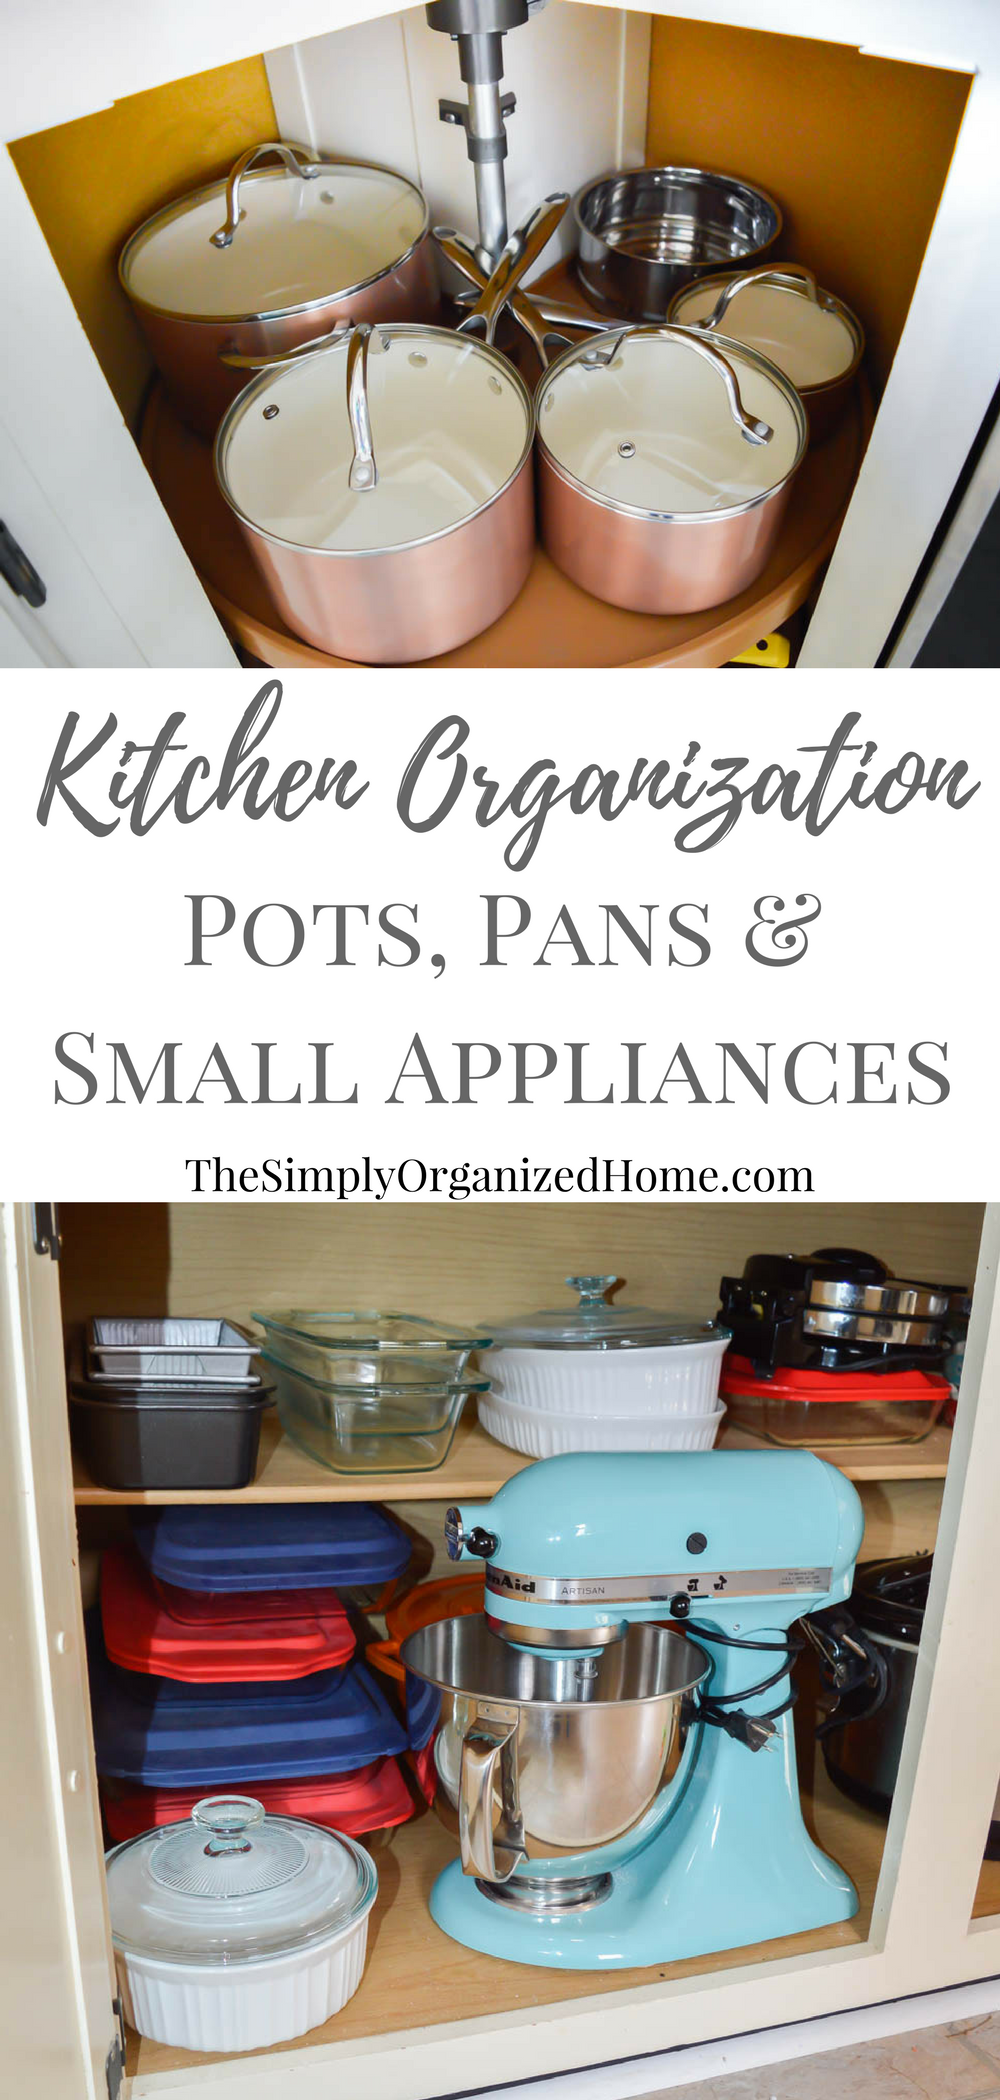 Kitchen Organization: Organizing Pots, Pans & Small Appliances - The ...